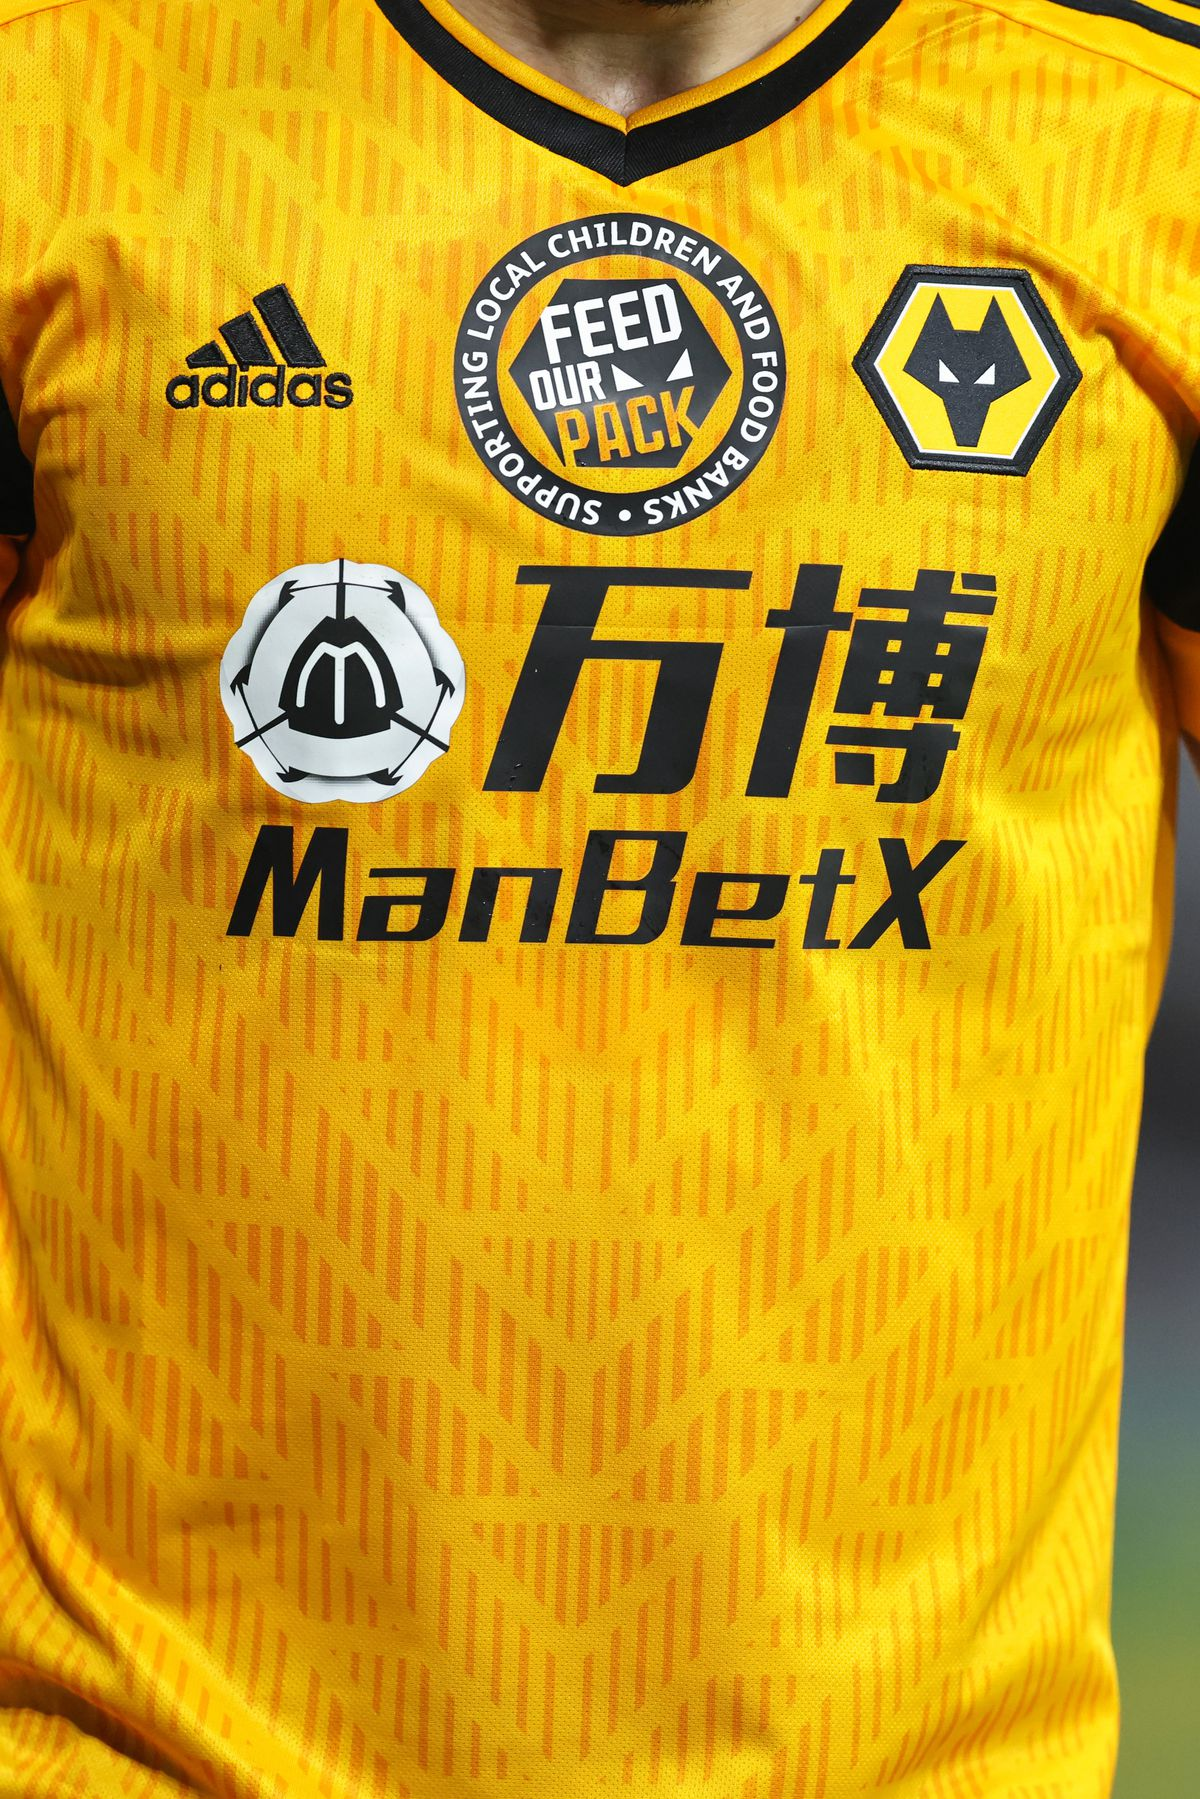 Wolves supporting local children and food banks with the team wearing a Feed Our Pack logo on the shirt.